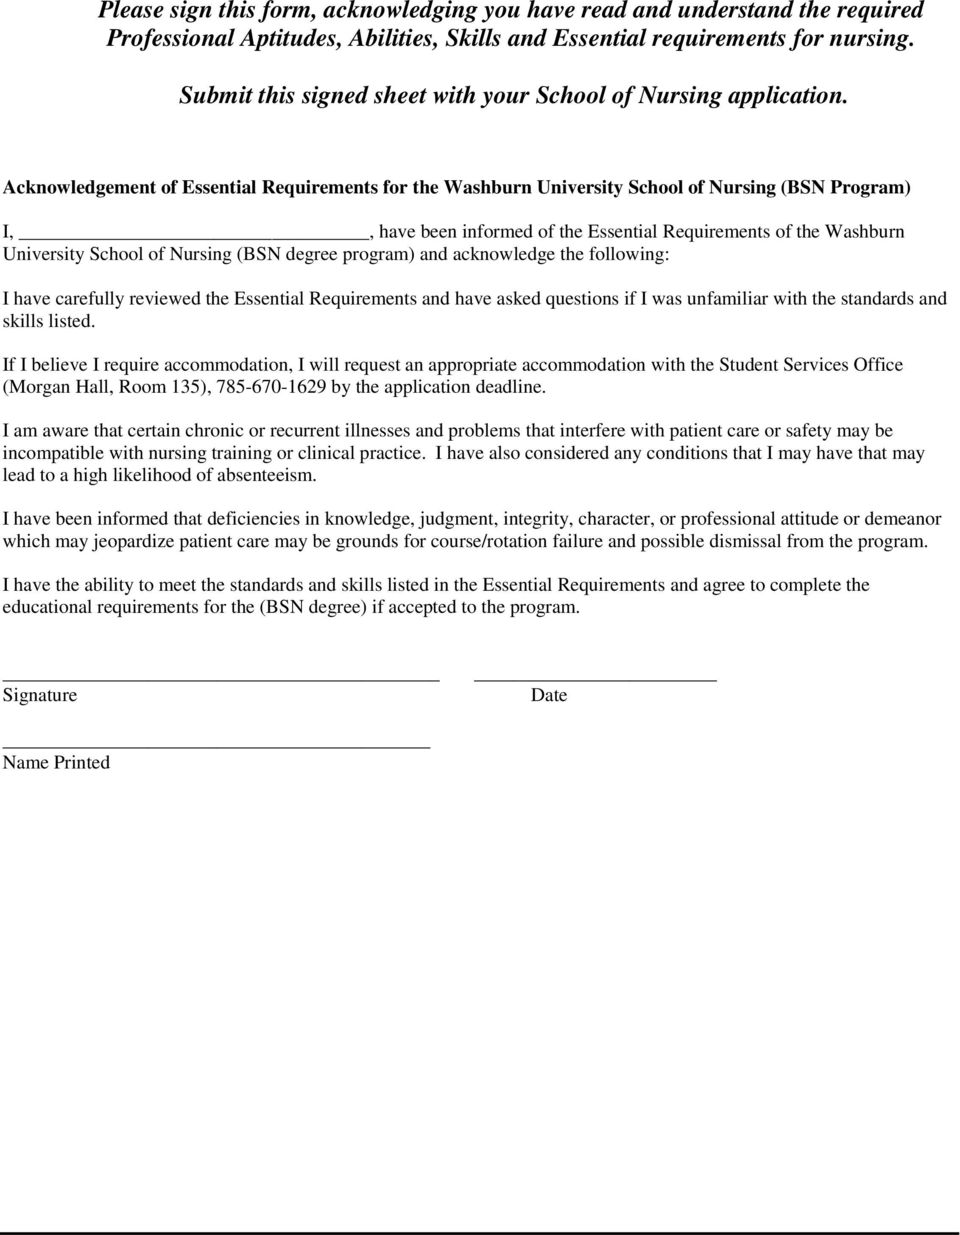 Acknowledgement of Essential Requirements for the Washburn University School of Nursing (BSN Program) I,, have been informed of the Essential Requirements of the Washburn University School of Nursing